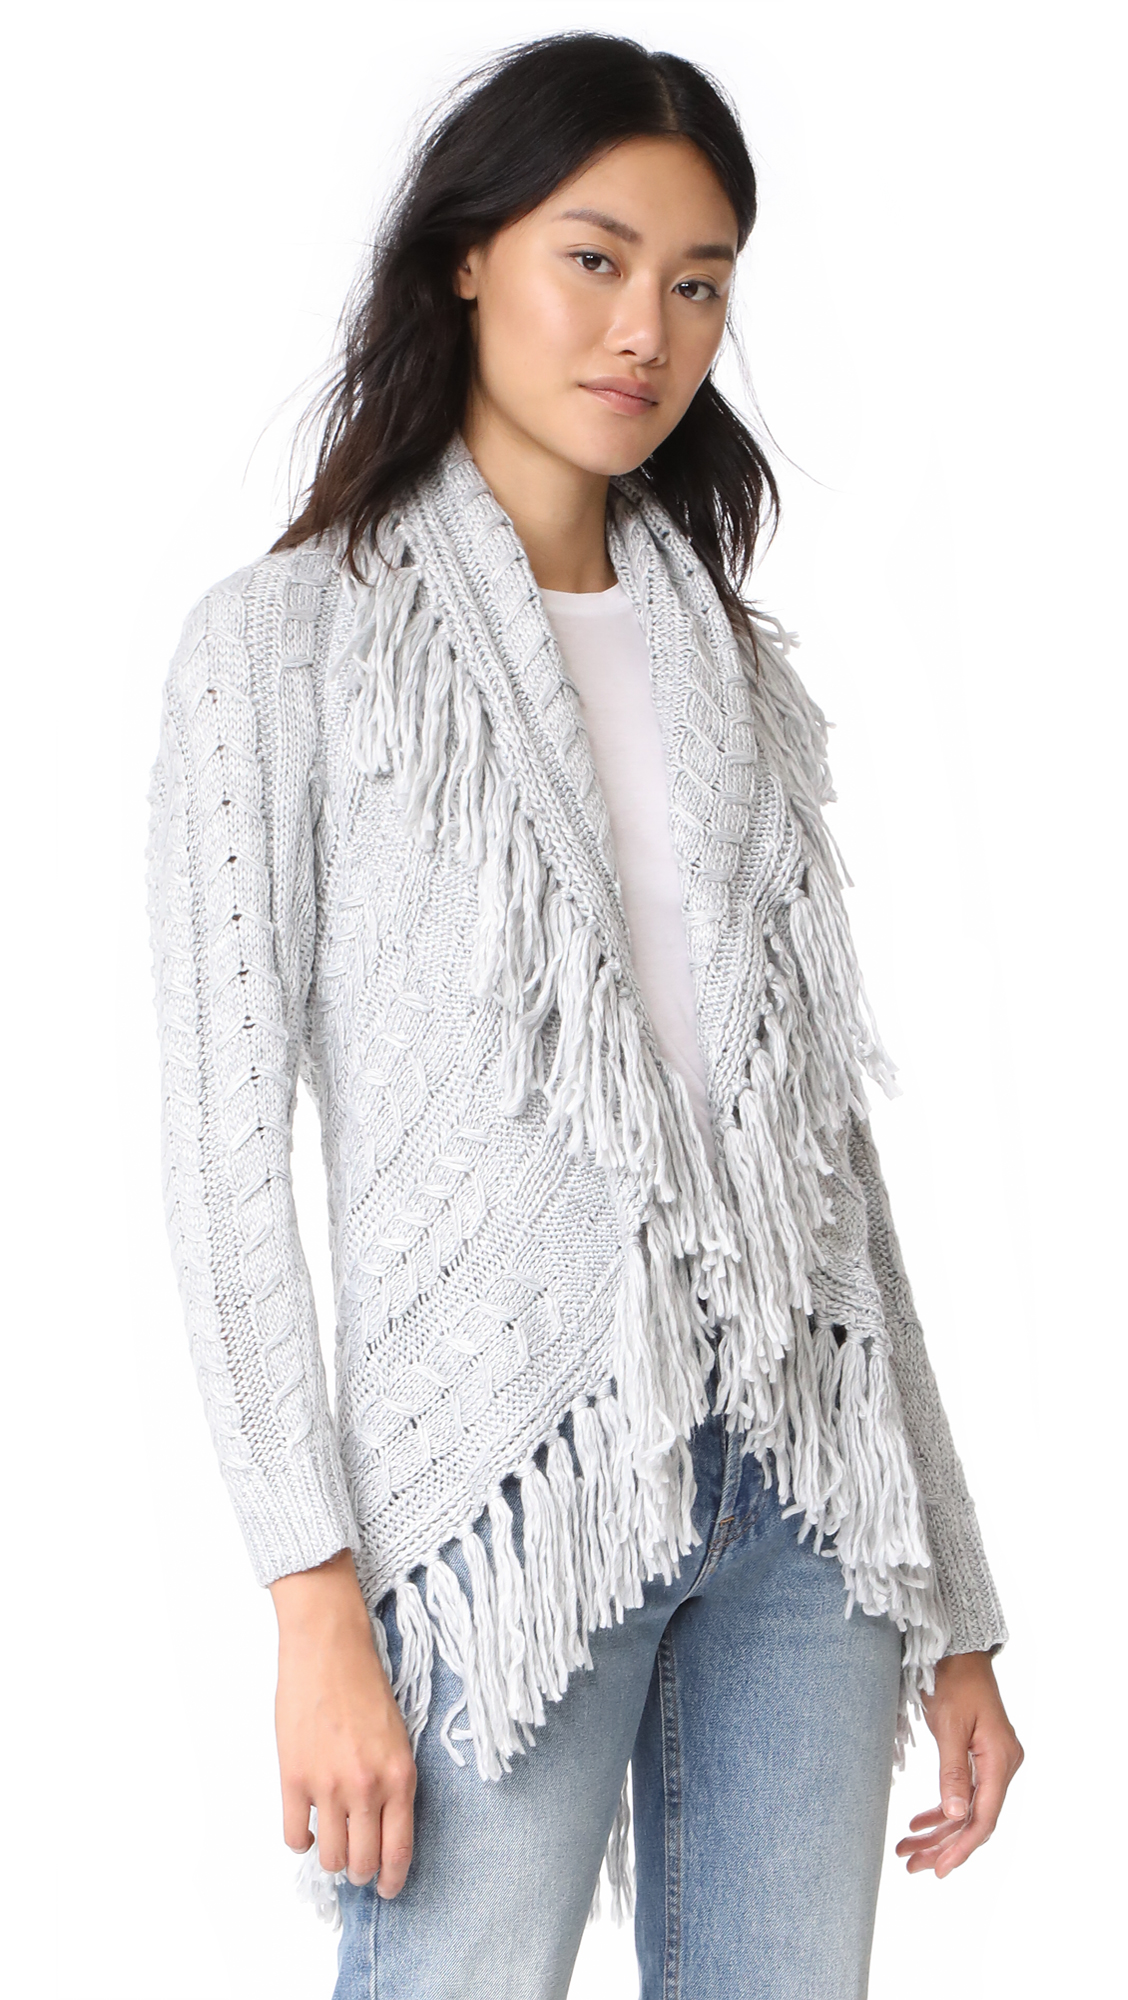 BB Dakota Karli Fringe Shawl Collar Cardigan - Light Heather Grey